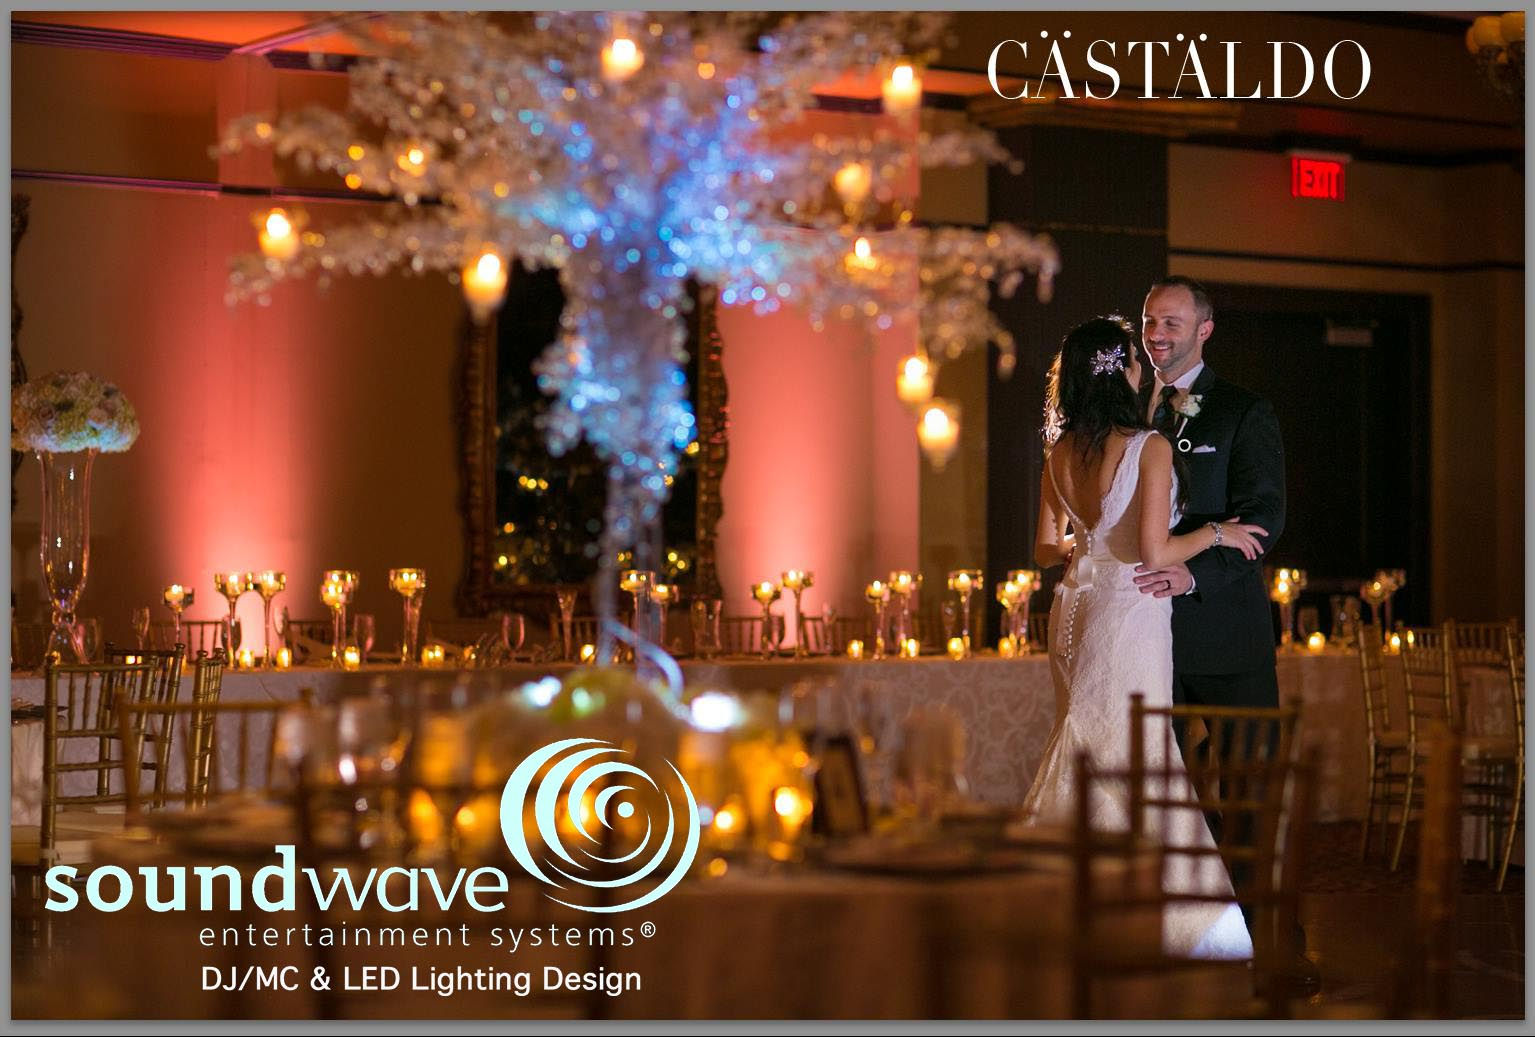 Soundwave Entertainment - Grand Bohemian - Orlando Wedding DJs - LED Lighting Design - Orlando Wedding Venues